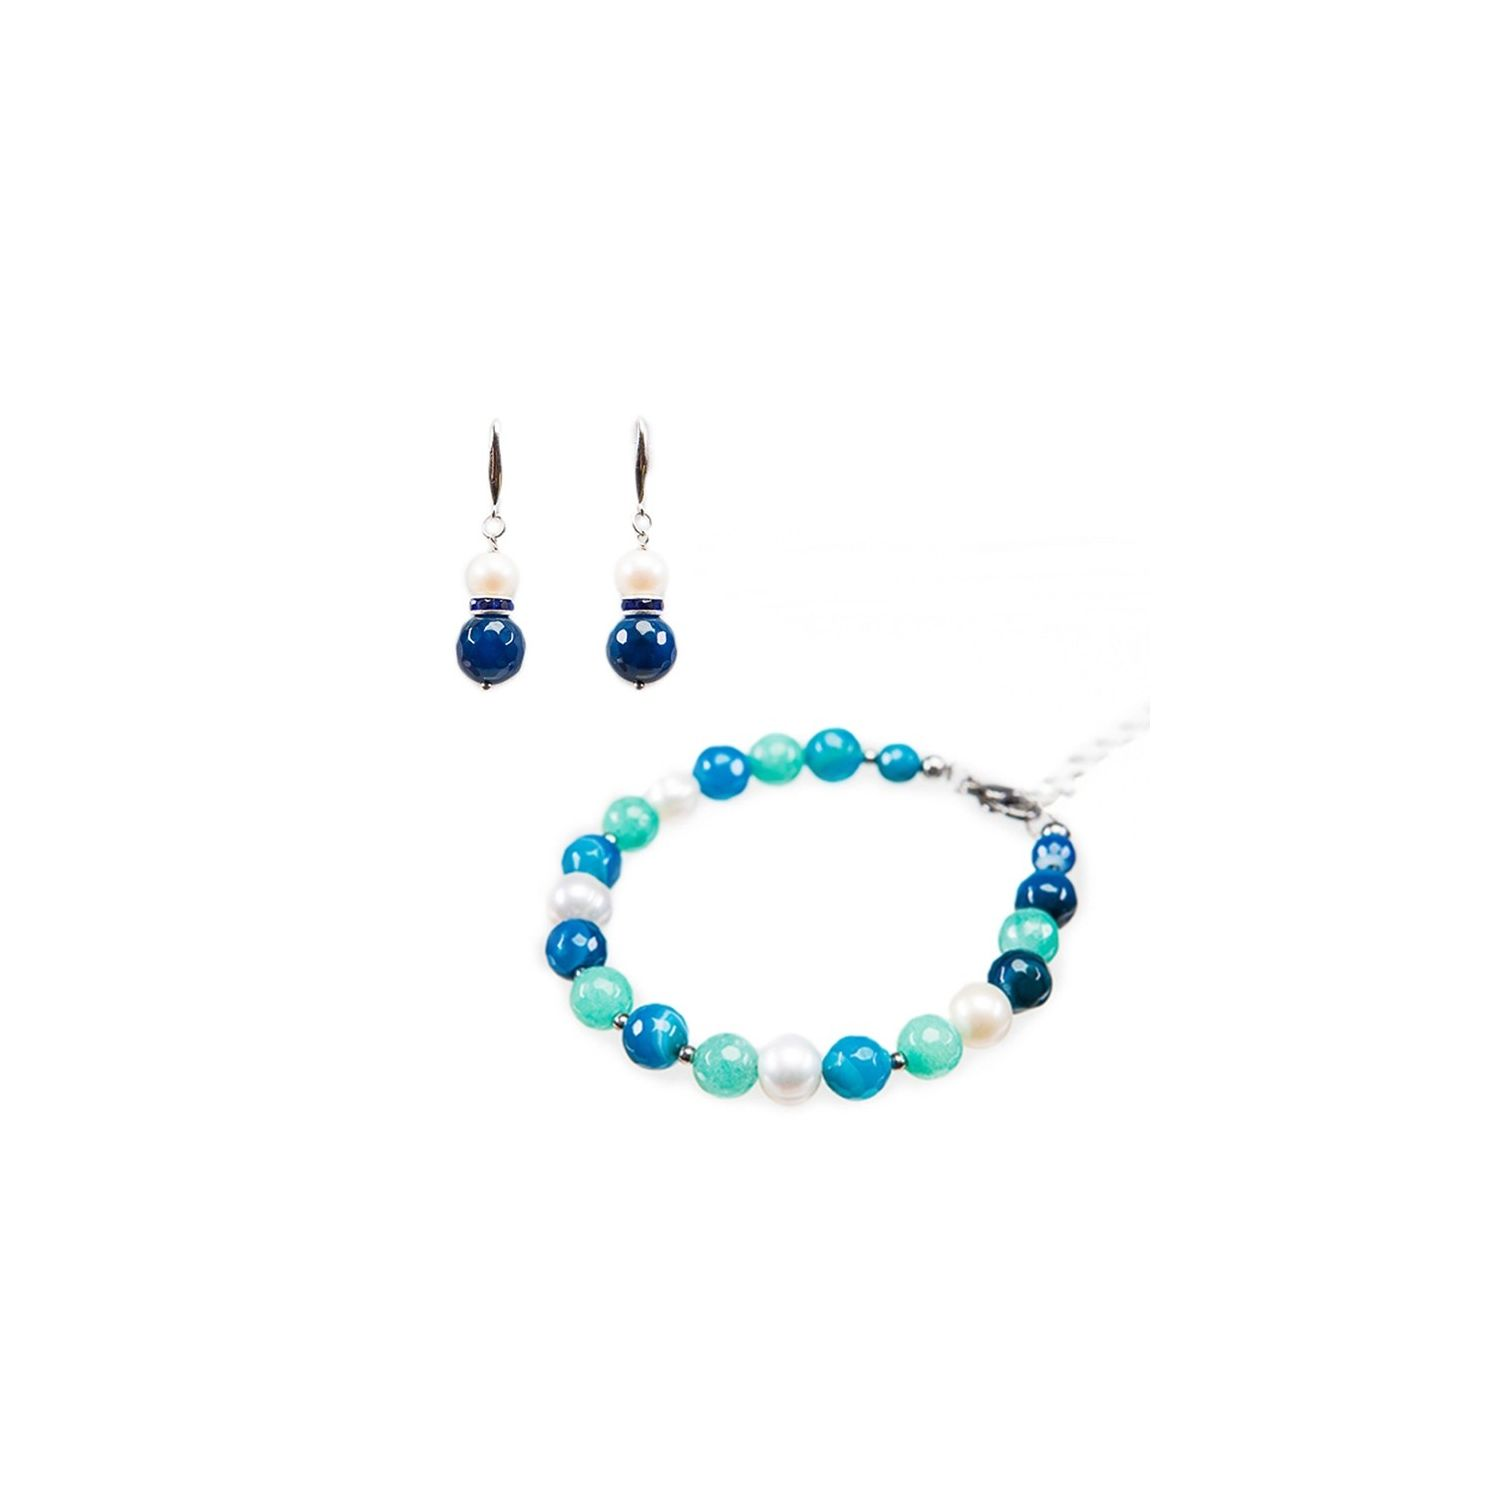 GIFT: Bracelet and earrings silver blue agate, turquoise and pearls